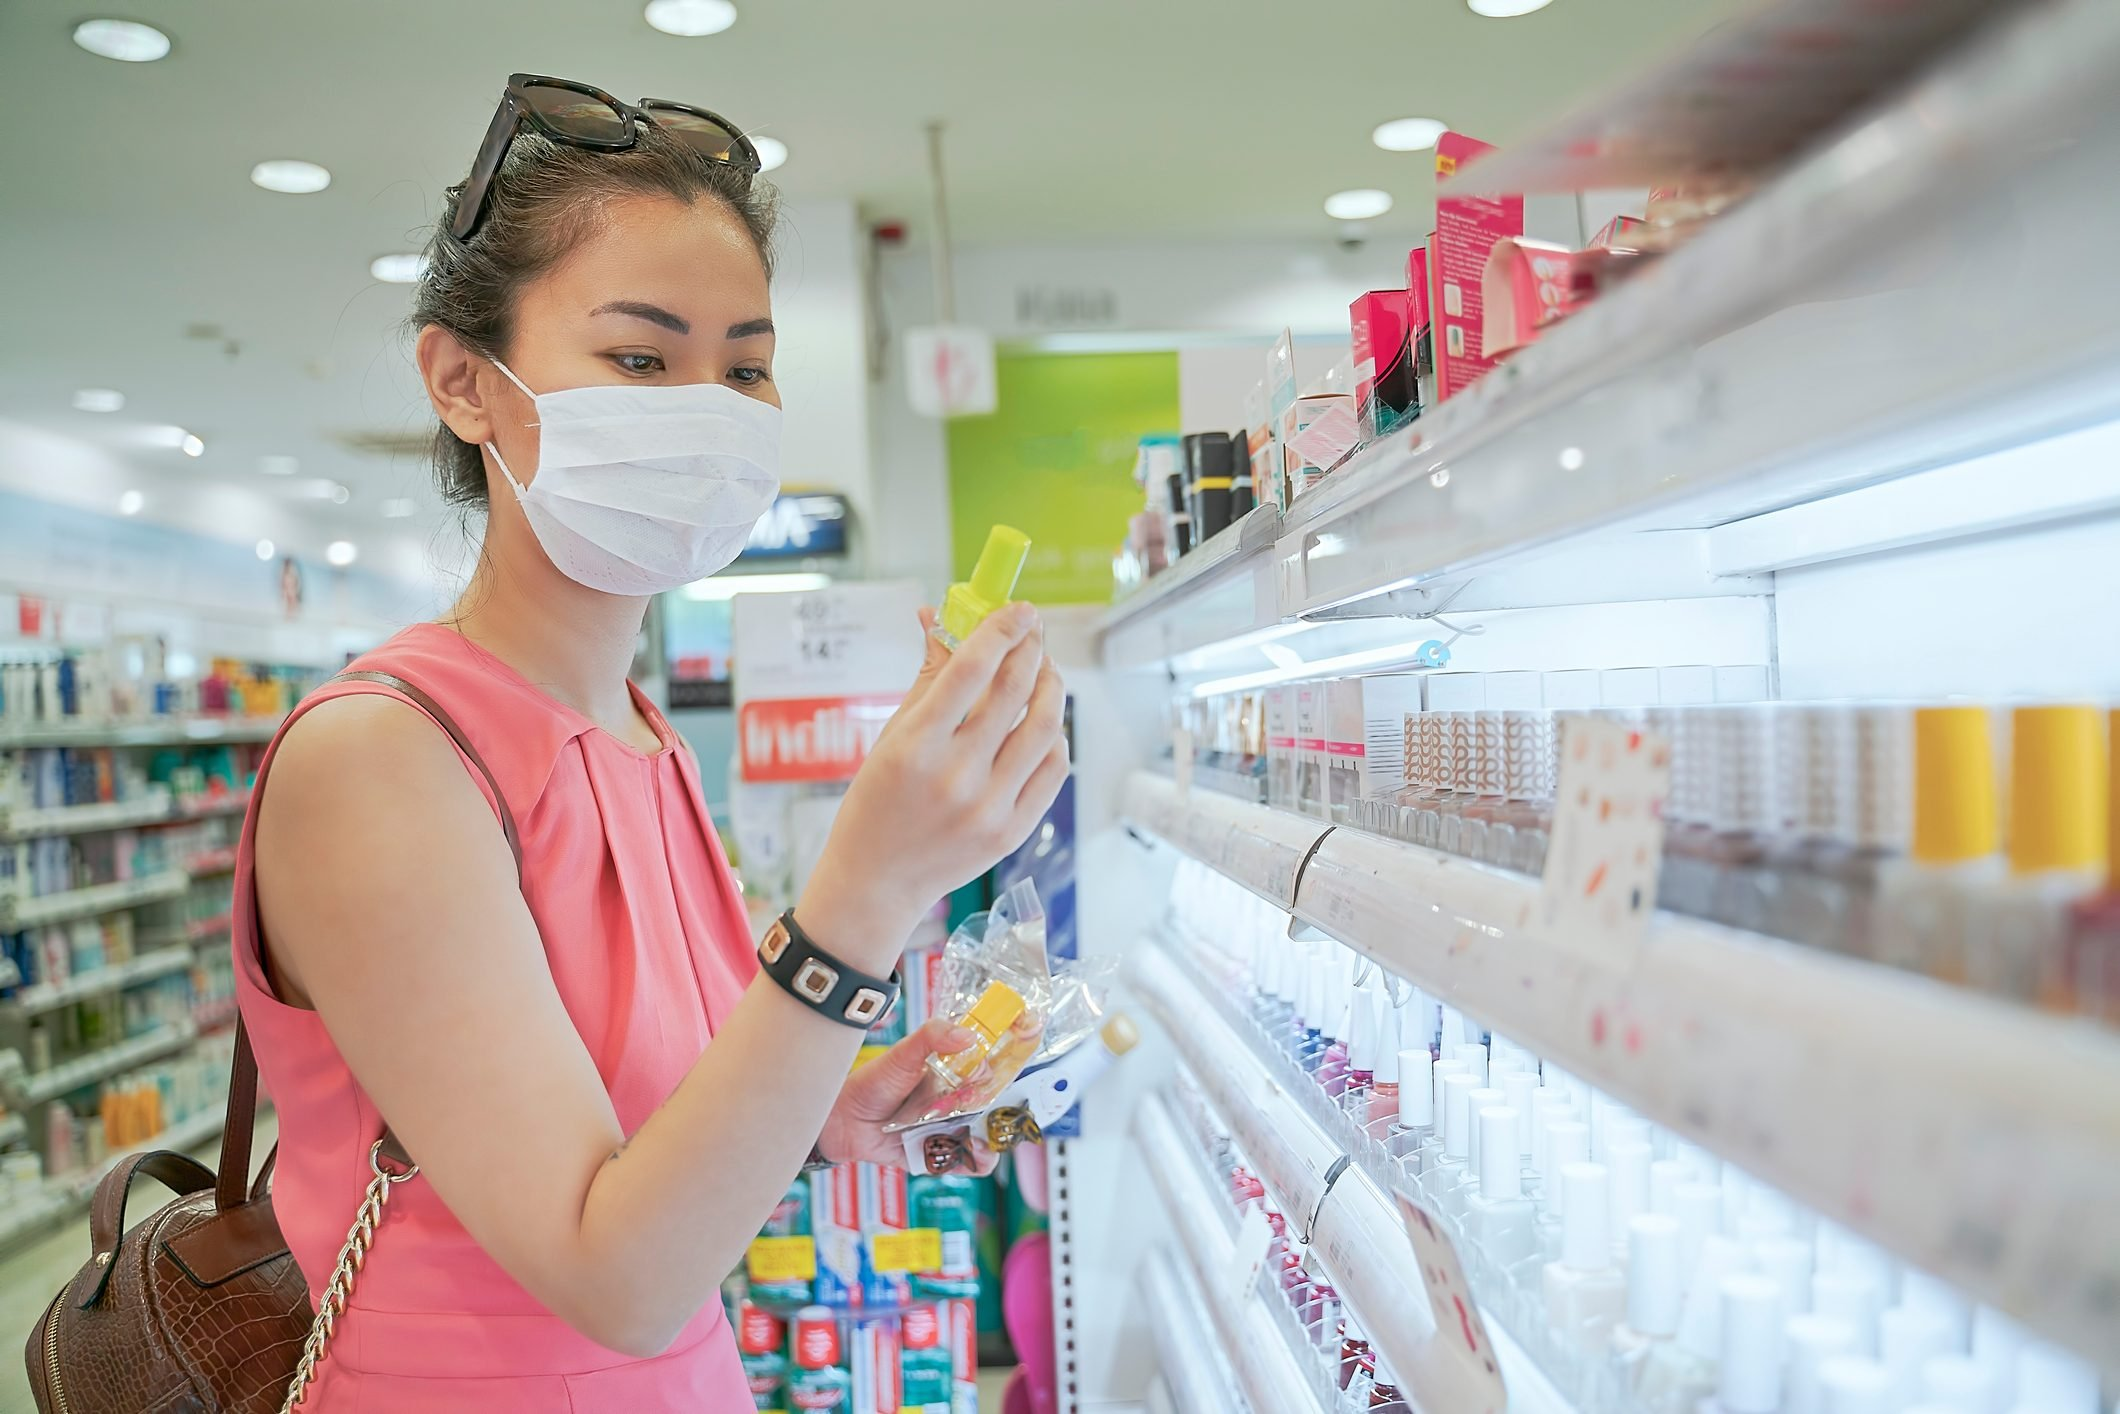 Woman buying nail polish beauty product during pandemic with face mask